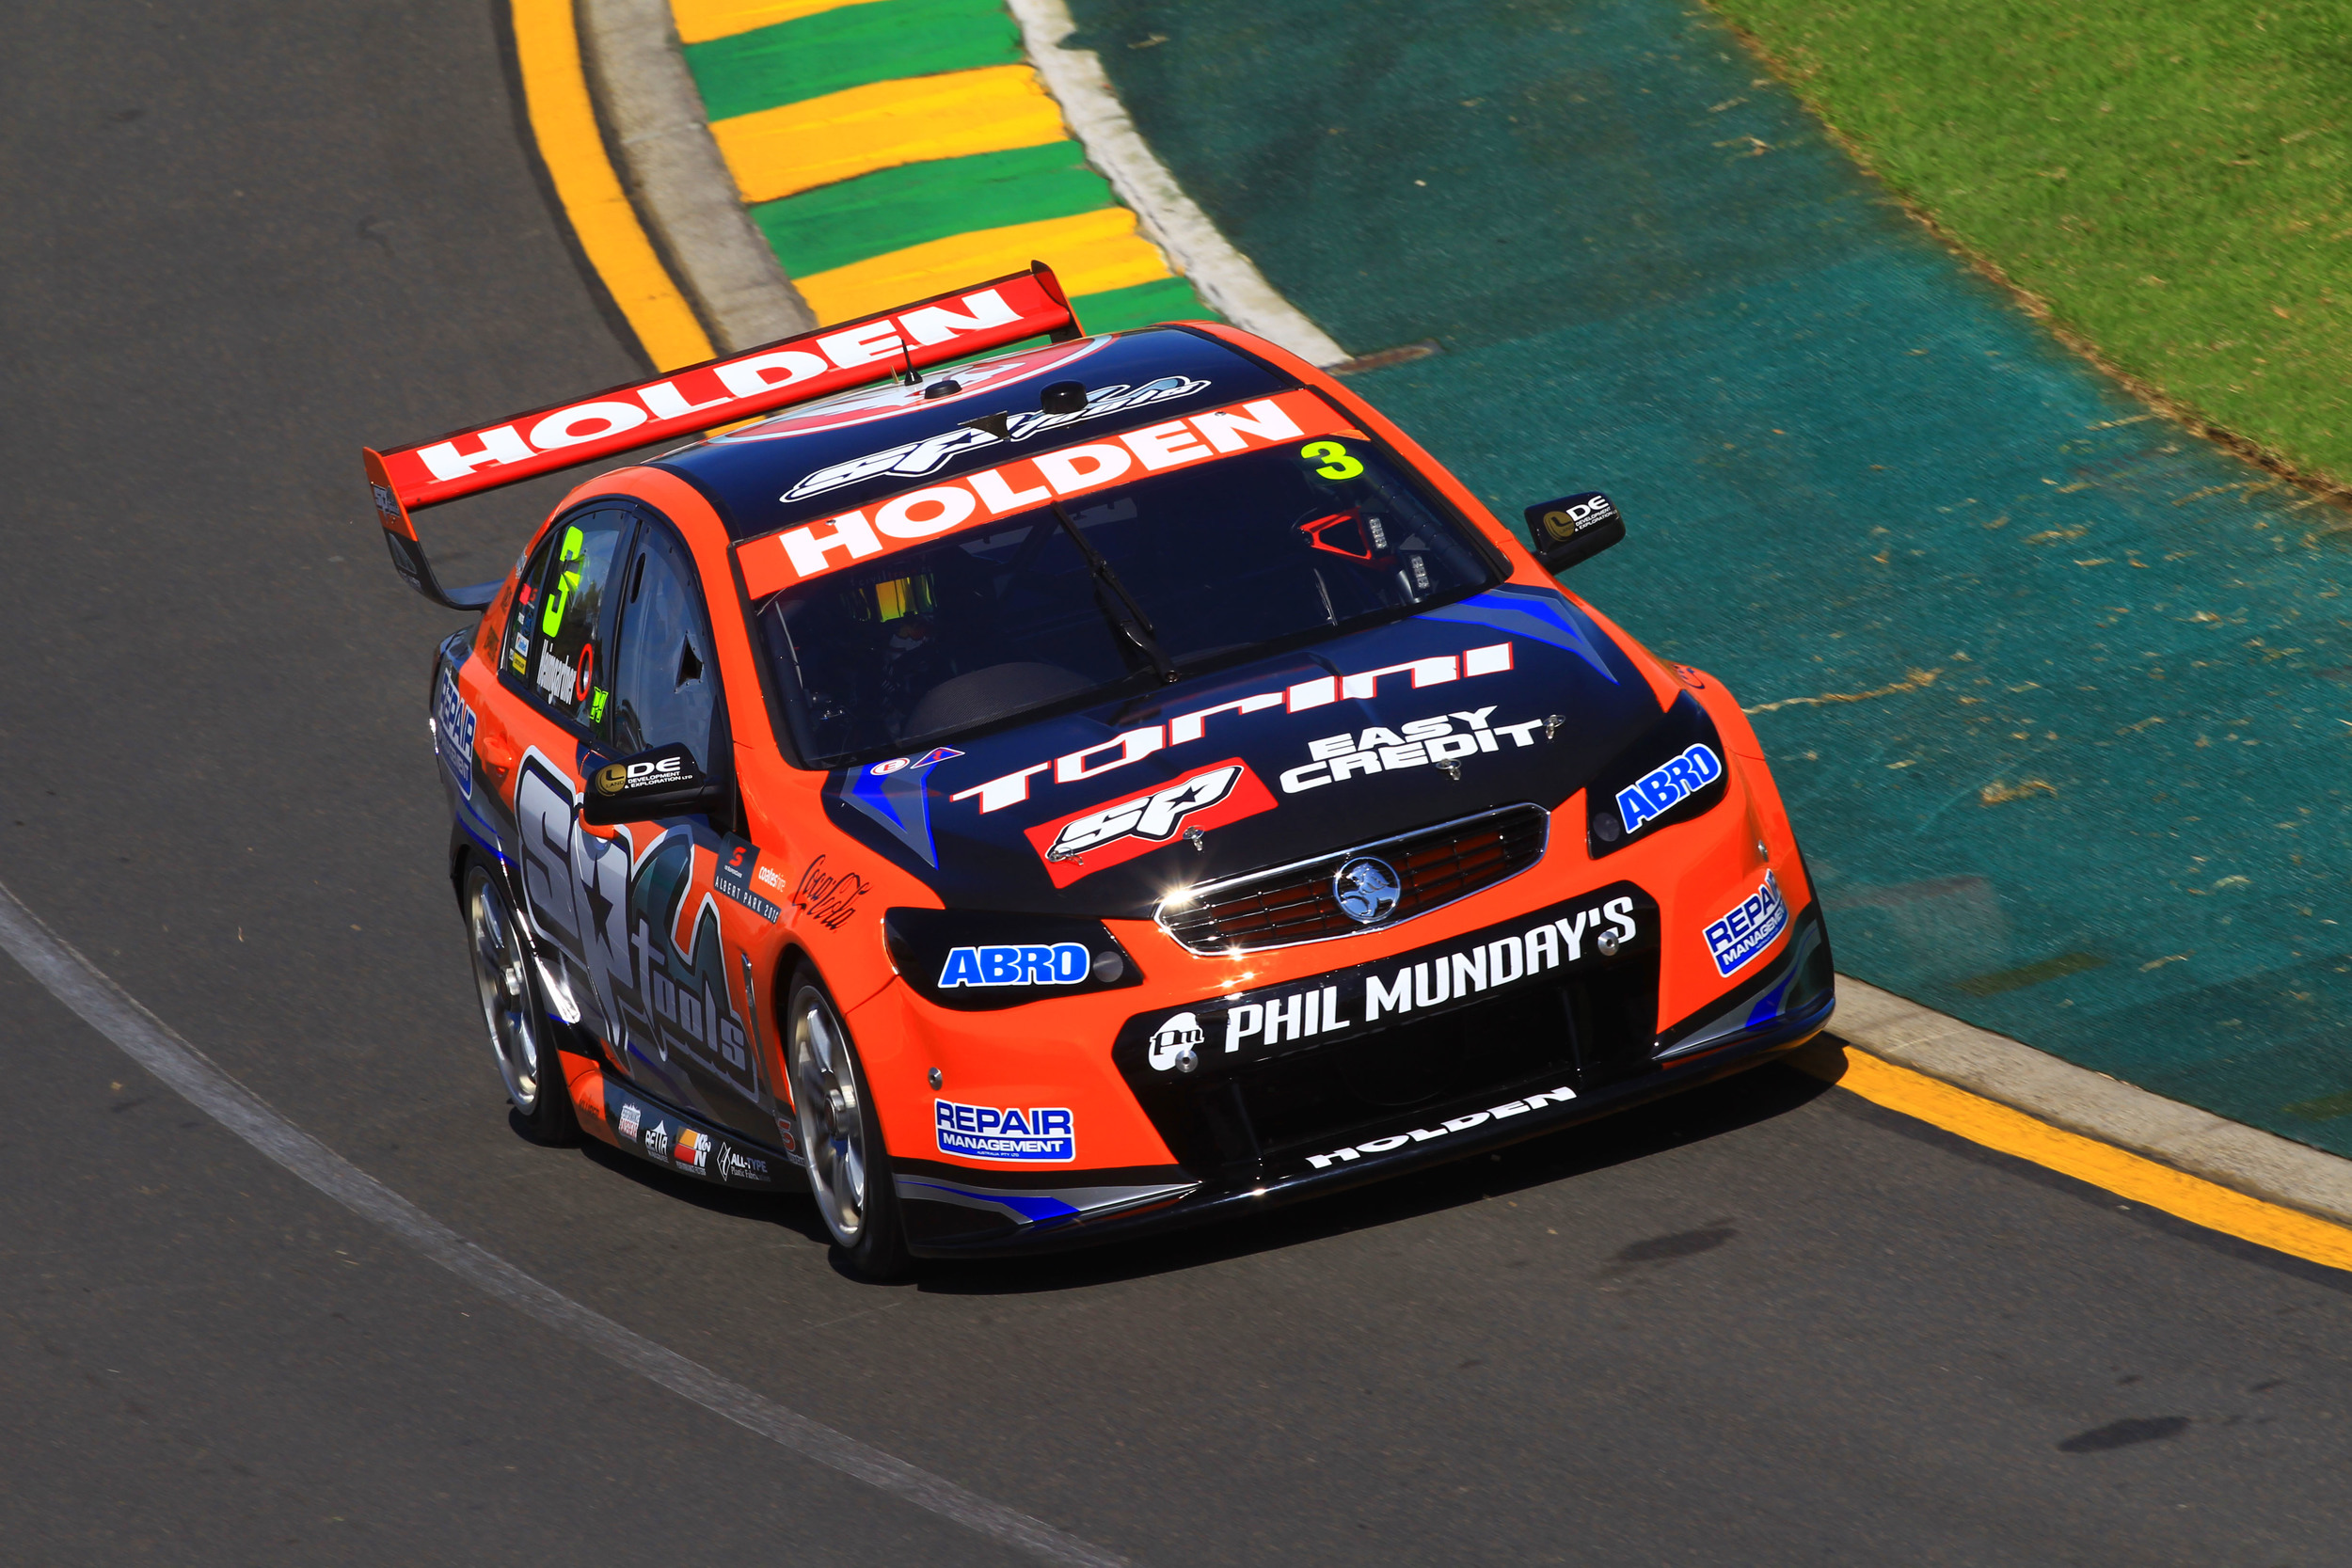 Andre Heimgartner in action at the Australian Grand Prix (credit- Dirk Klynsmith Photography)